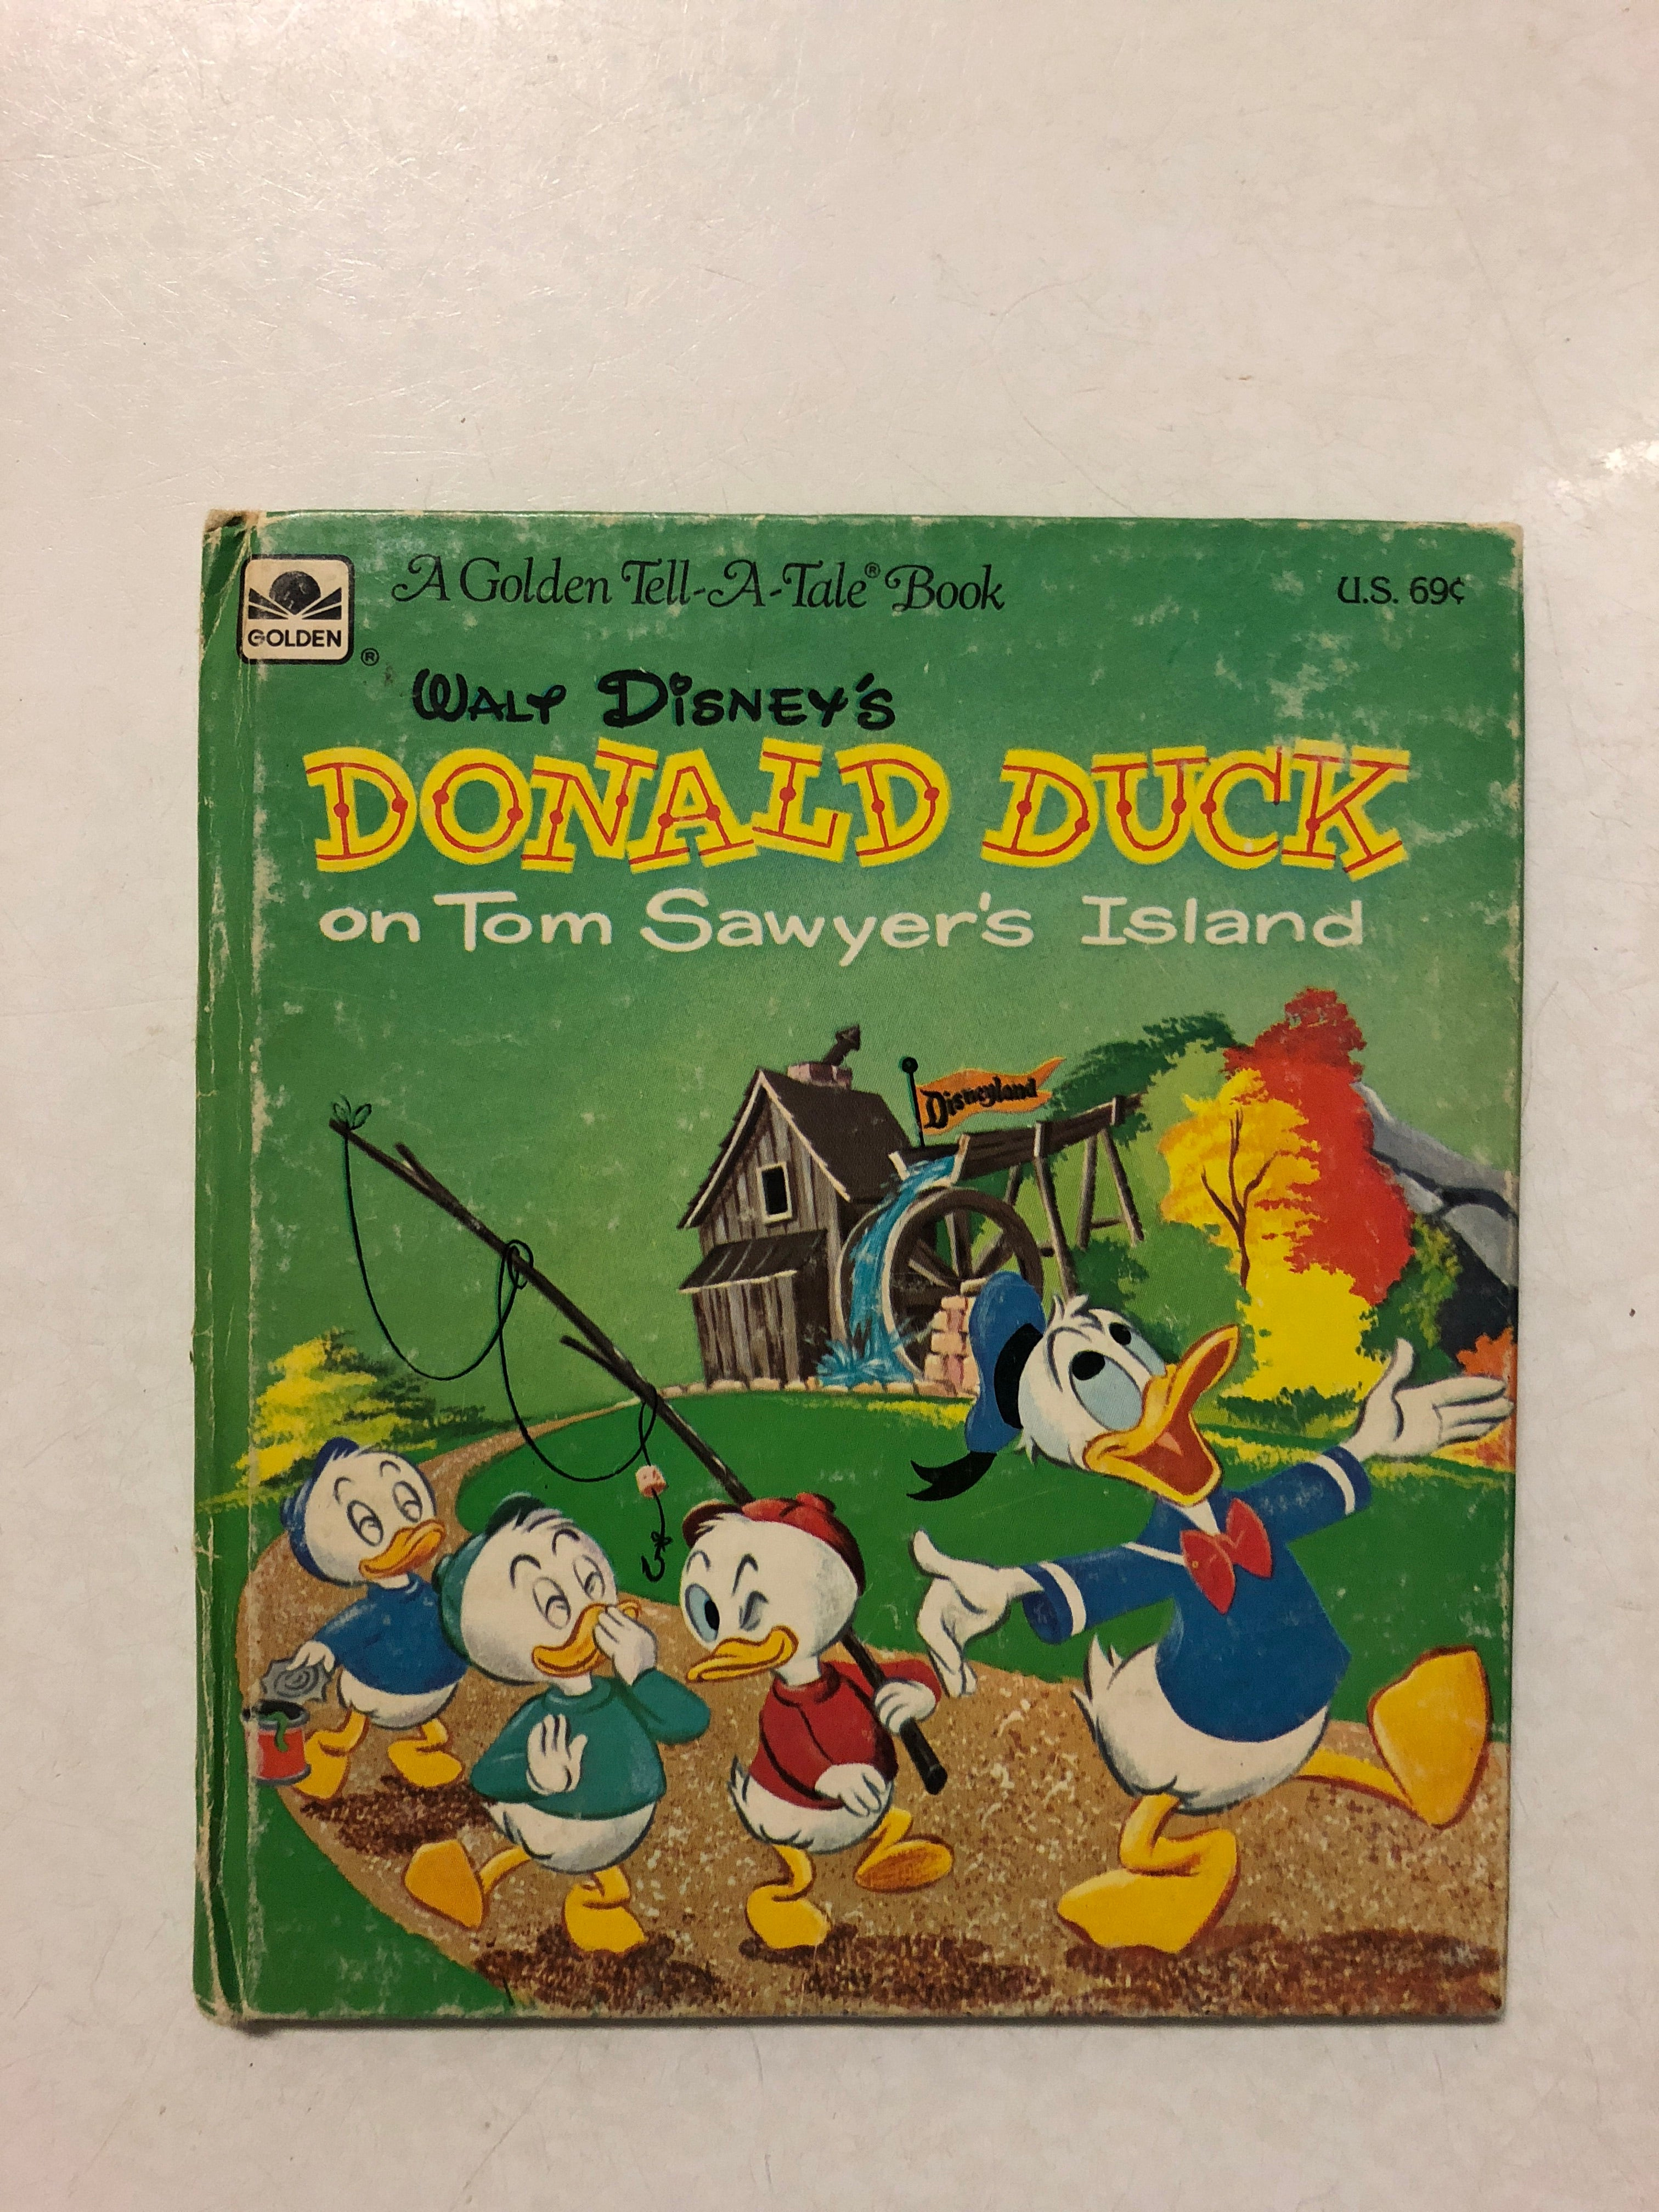 Walt Disney's Donald Duck on Tom Sawyer's Island -Slick Cat Books